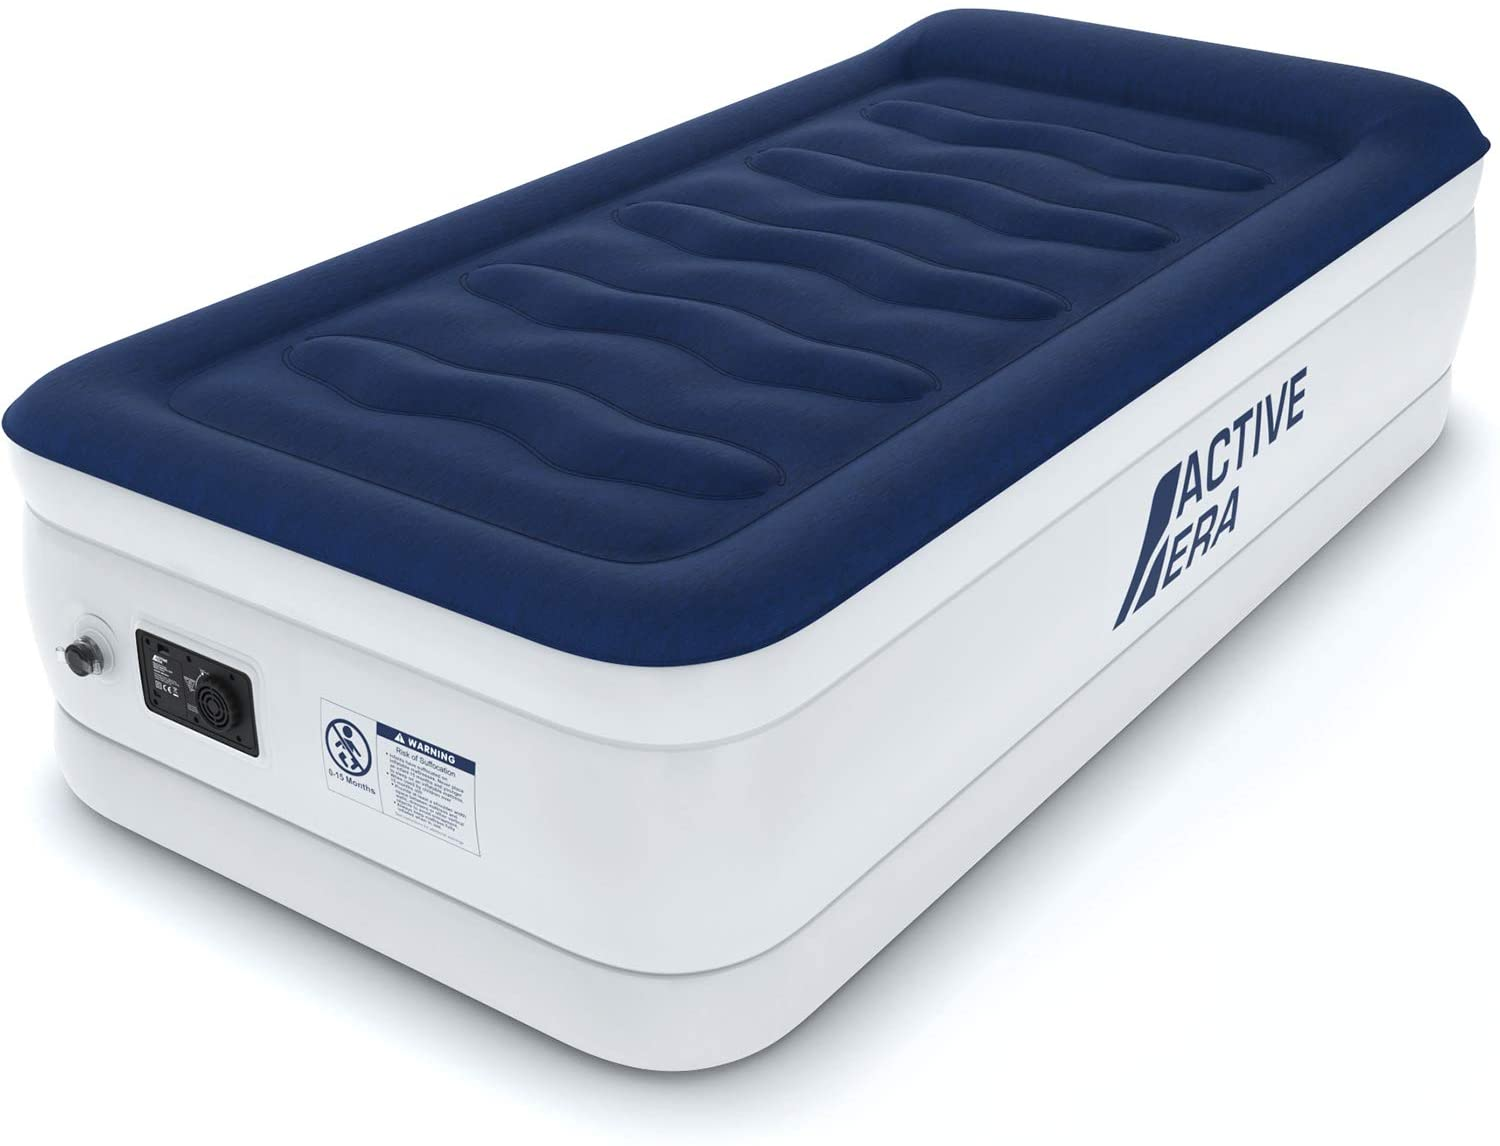 "Active Era Luxury Twin Size Air Mattress (Single) - Elevated Inflatable Air Bed, Electric Built-in Pump, Raised Pillow & Structured I-Beam Technology, Height 21"": Sports & Outdoors"